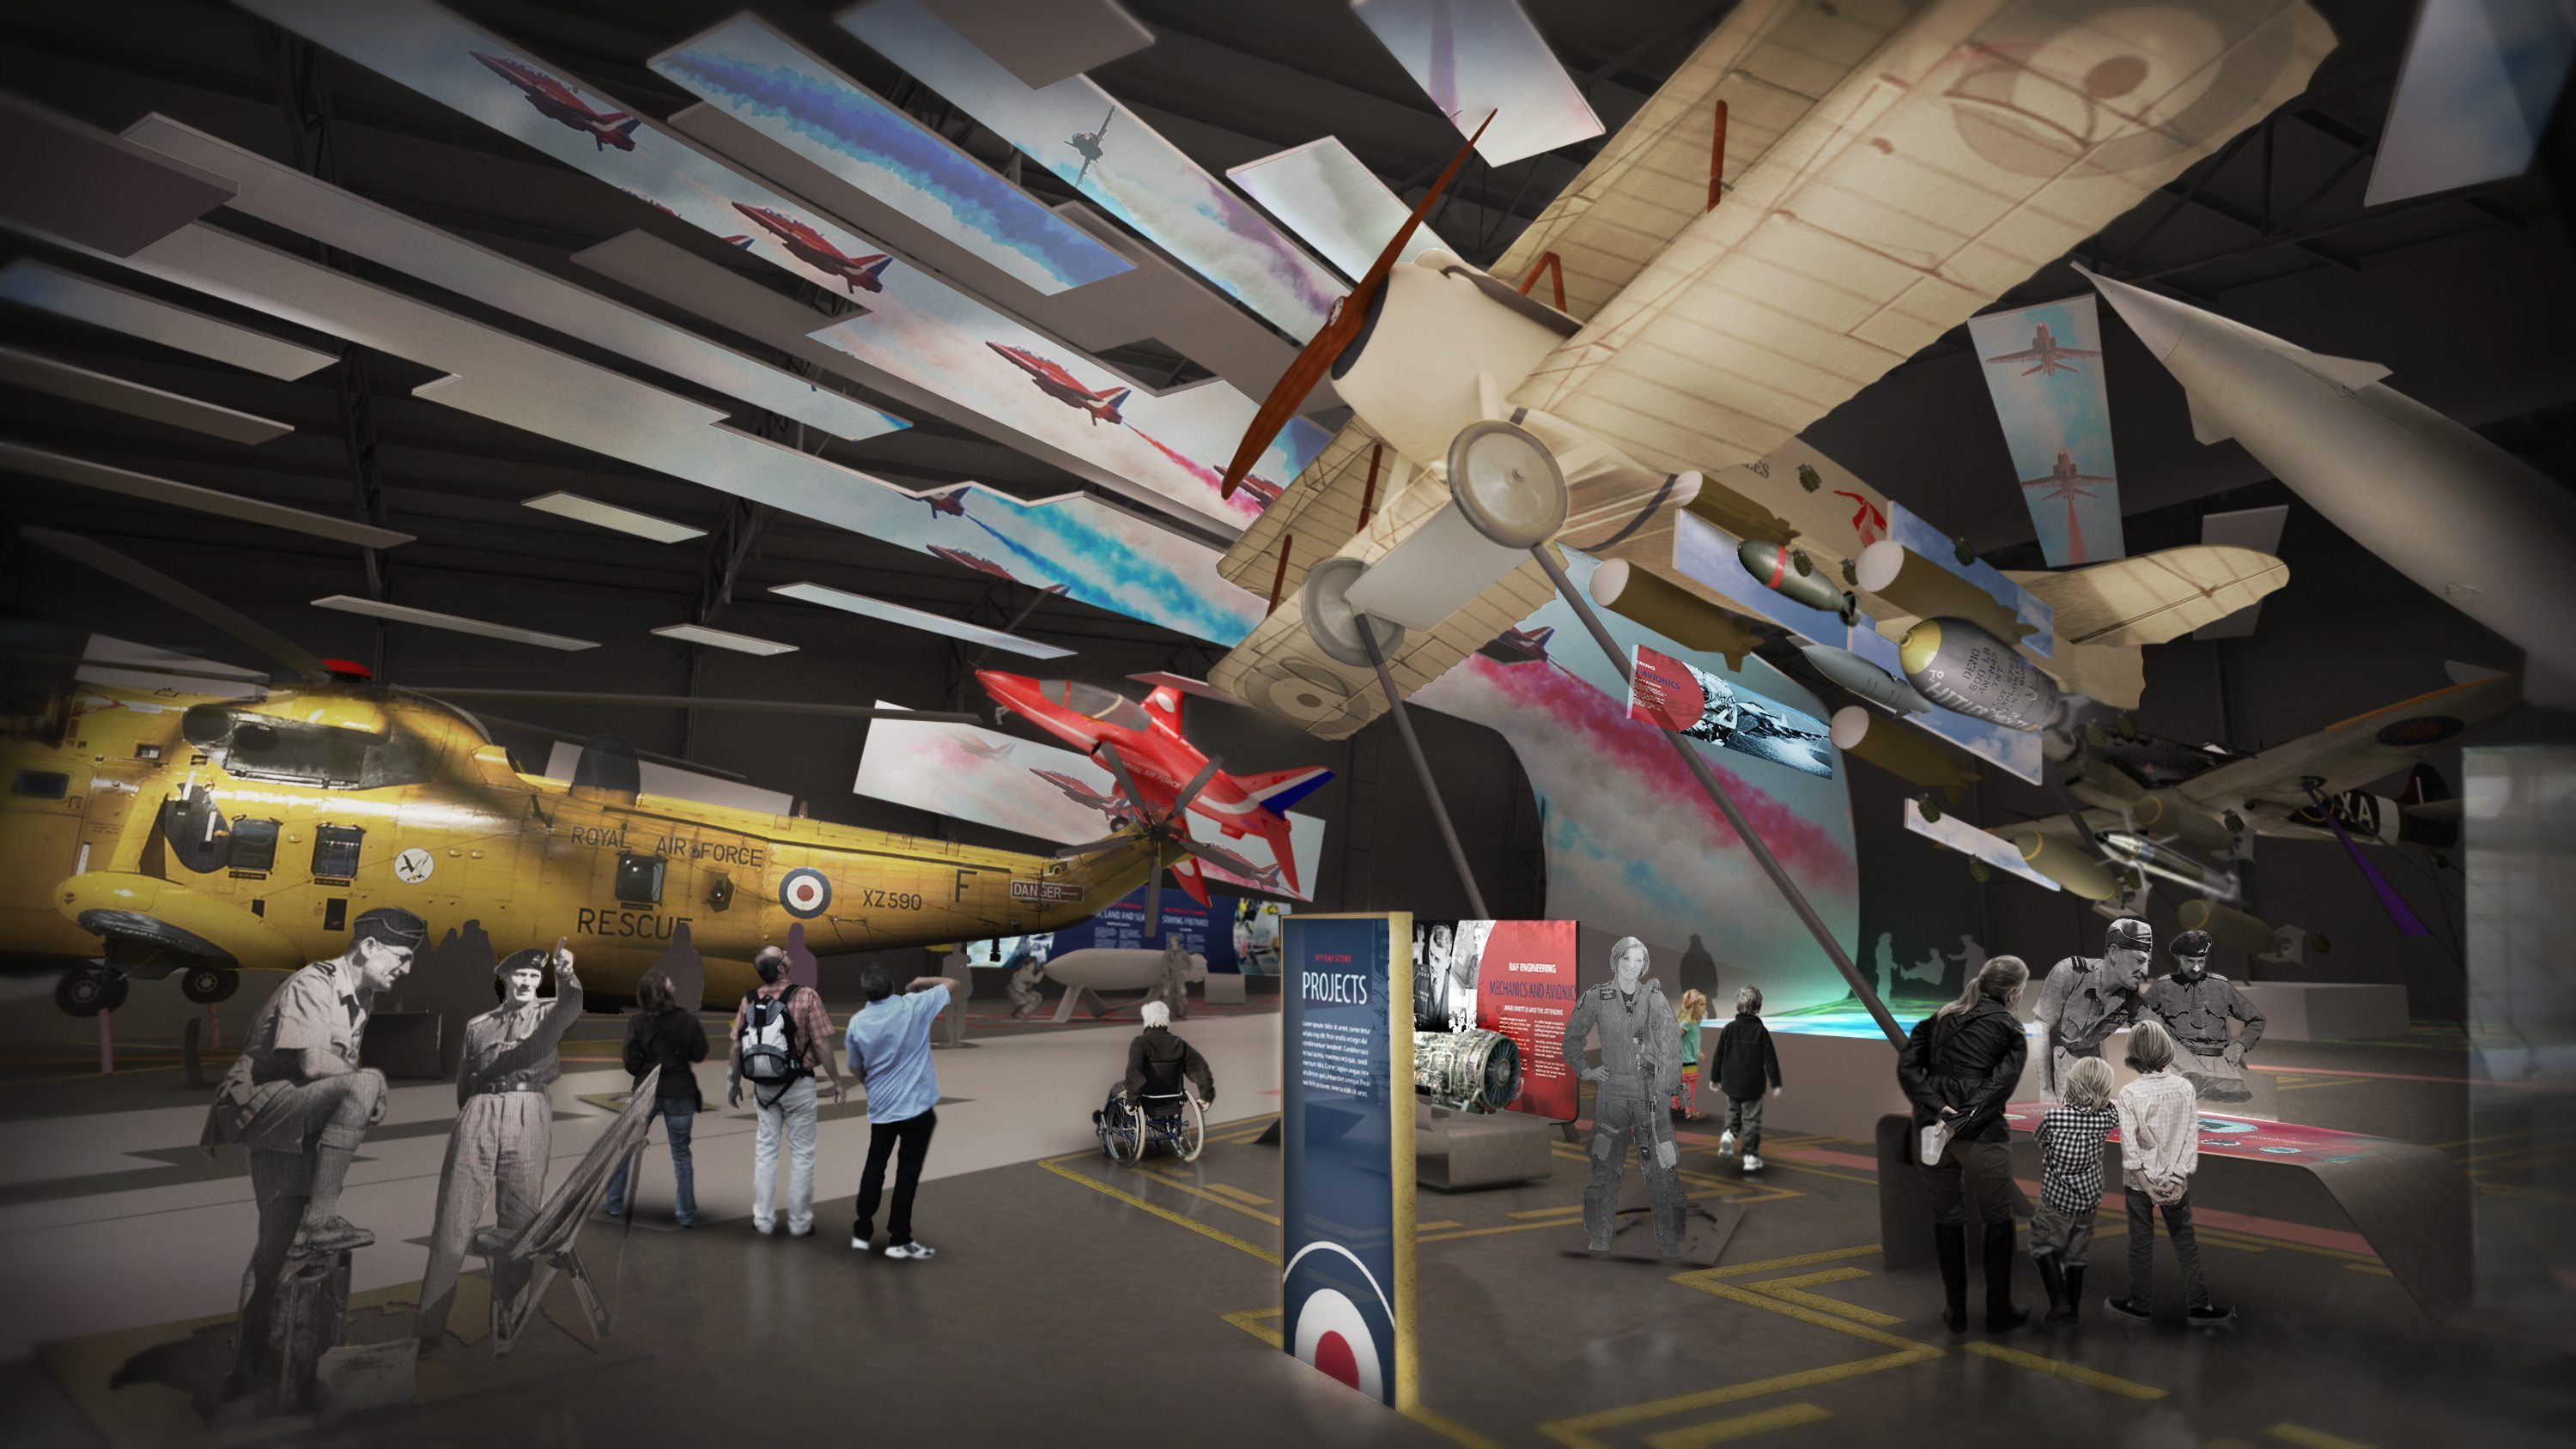 100 Years of the RAF - RAF Museum Centenary